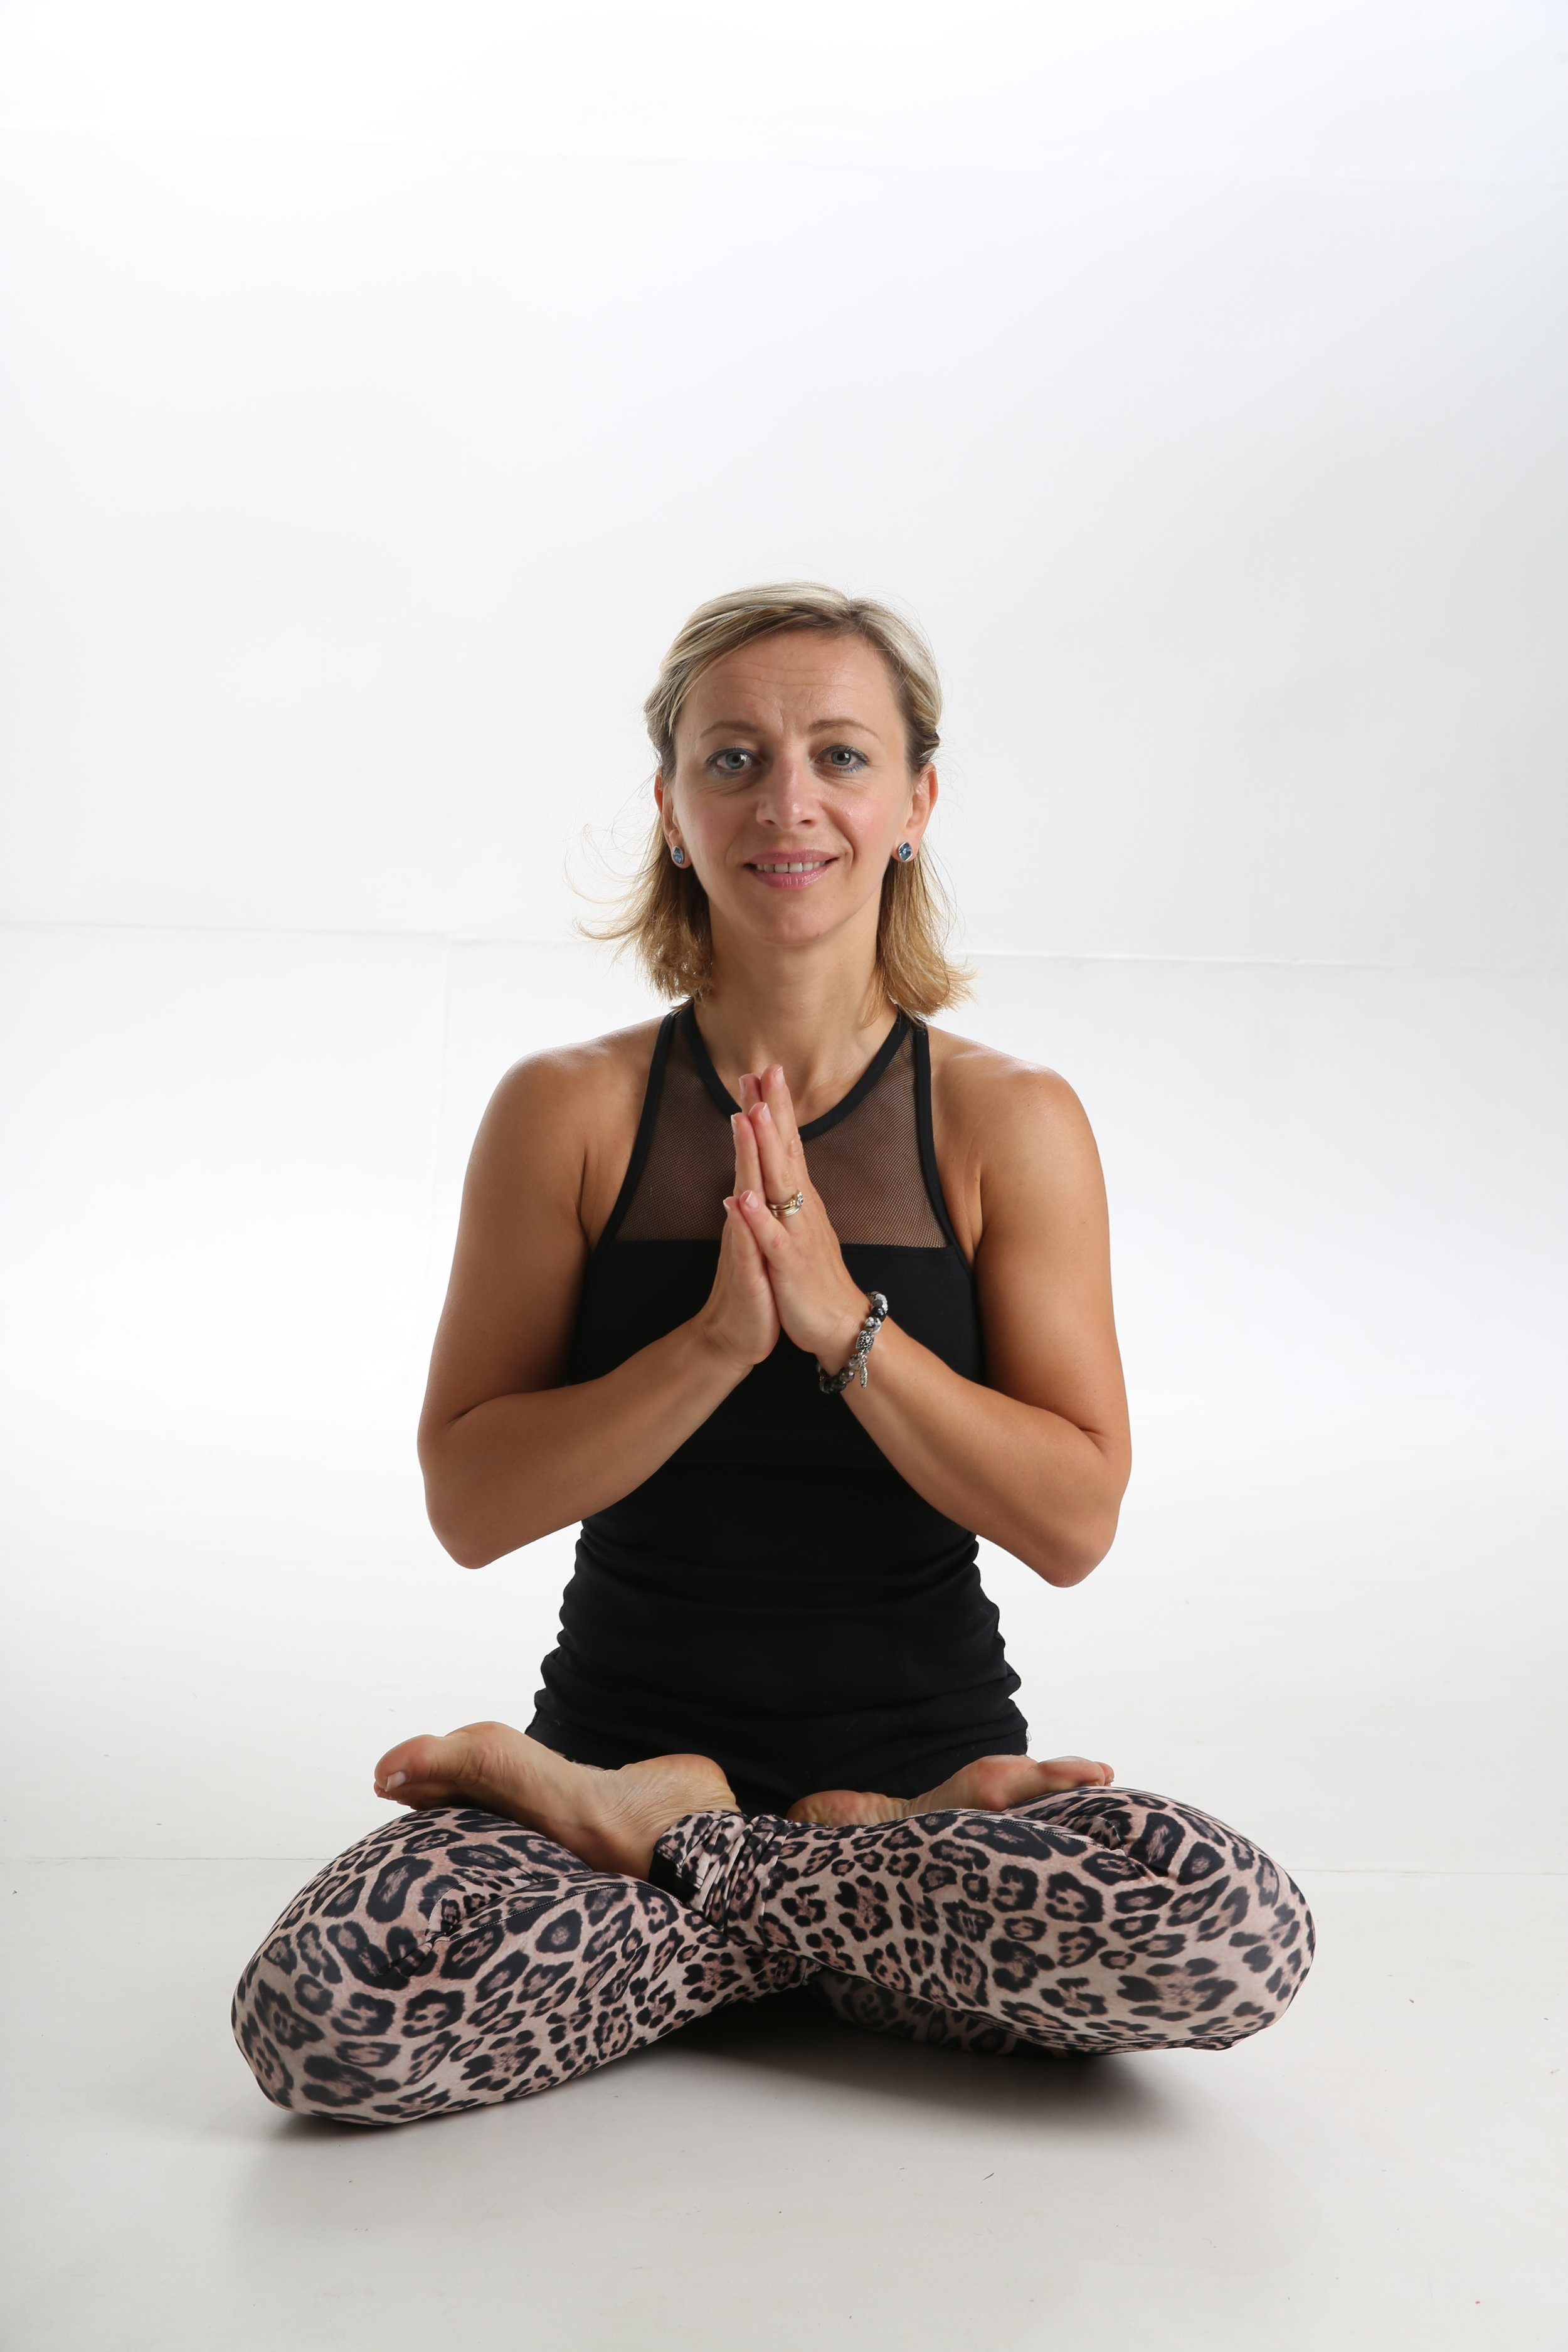 """Co Founder: Kat JenningsAshtanga Vinyasa and Restorative Yoga Teacher - My first encounter of Yoga was in 2009 when it was prescribed as a therapy to heal a back injury. In October 2010 I ventured to India to deepen my knowledge and understanding of Yoga and qualified as a """"200 HR"""" Yoga Teacher at Sampoorna Yoga, and have been teaching Yoga and promoting a healthier lifestyle ever since.Over the years of my yoga practice I was very fortunate to meet and study with some"""